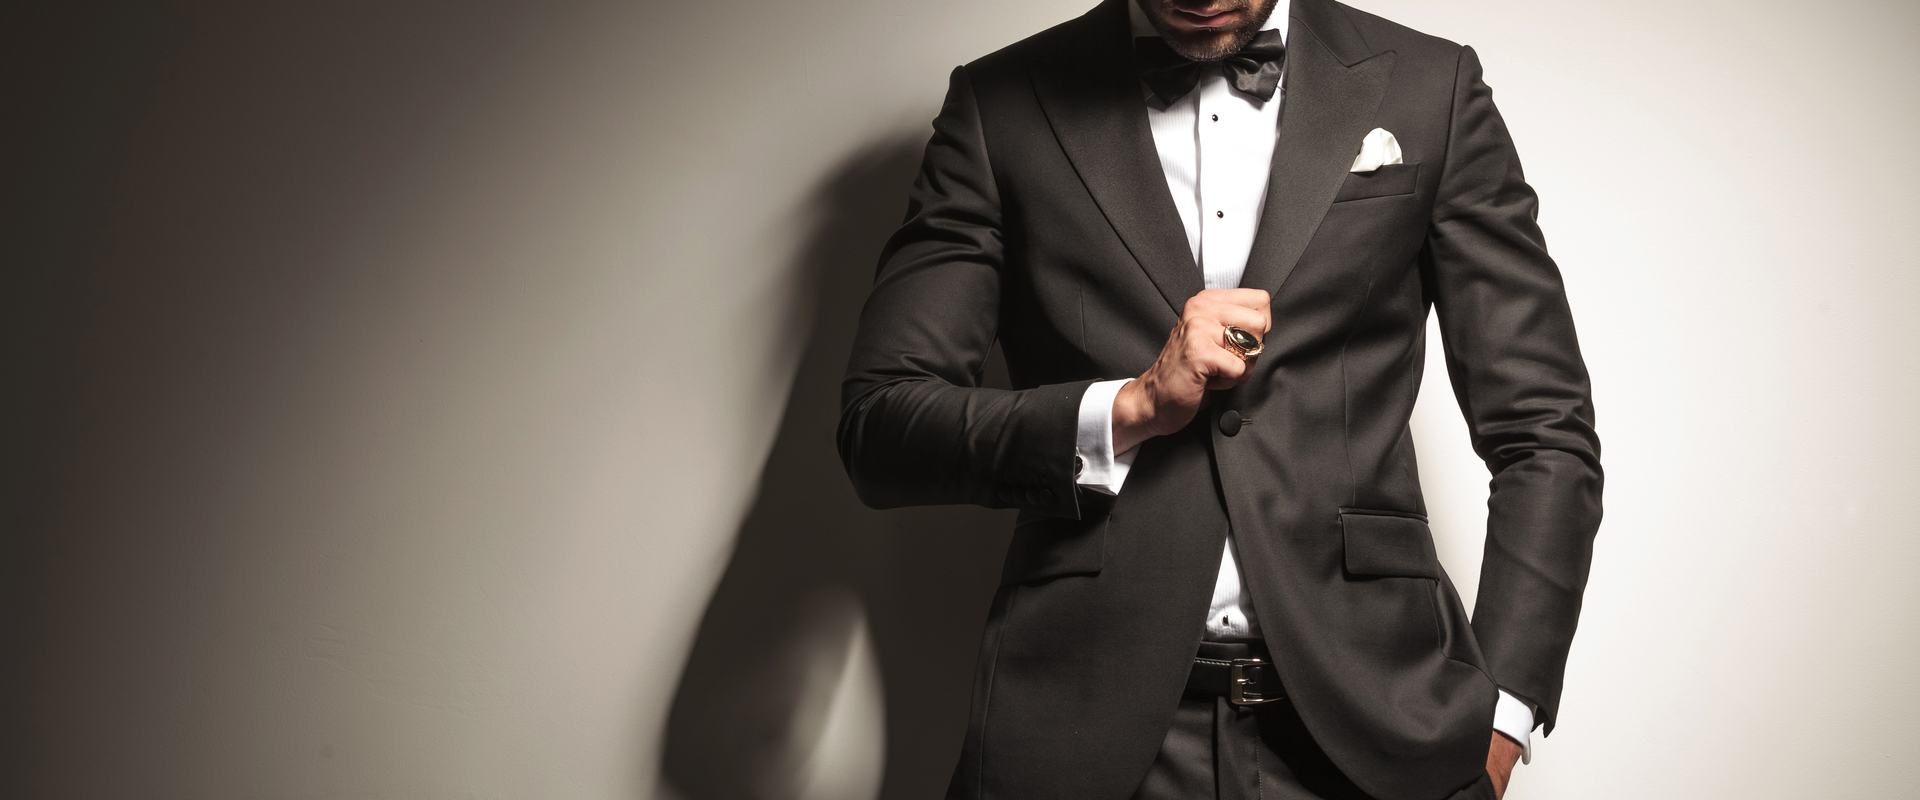 Custom Tuxedos and Formalwear